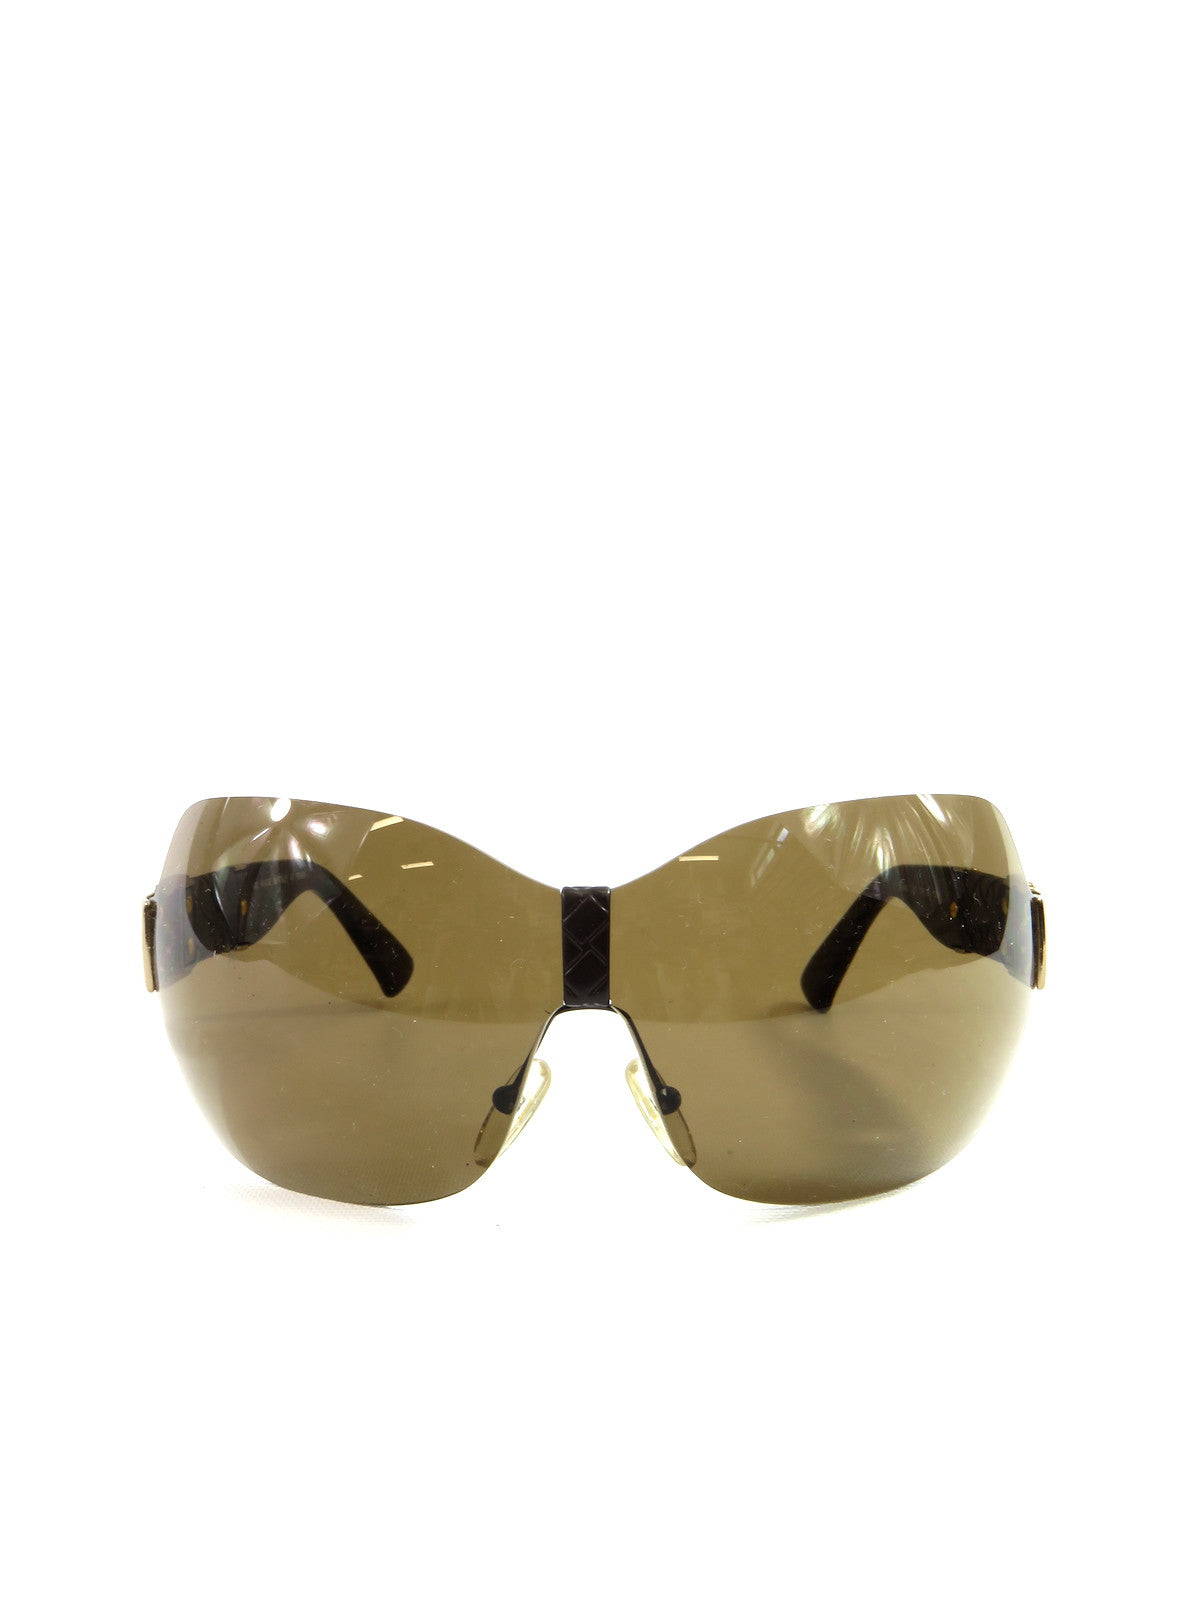 0a7c758fa0a NEW! FENDI Women SUNGLASSES Brown Gold Leather Braided Accents Framele